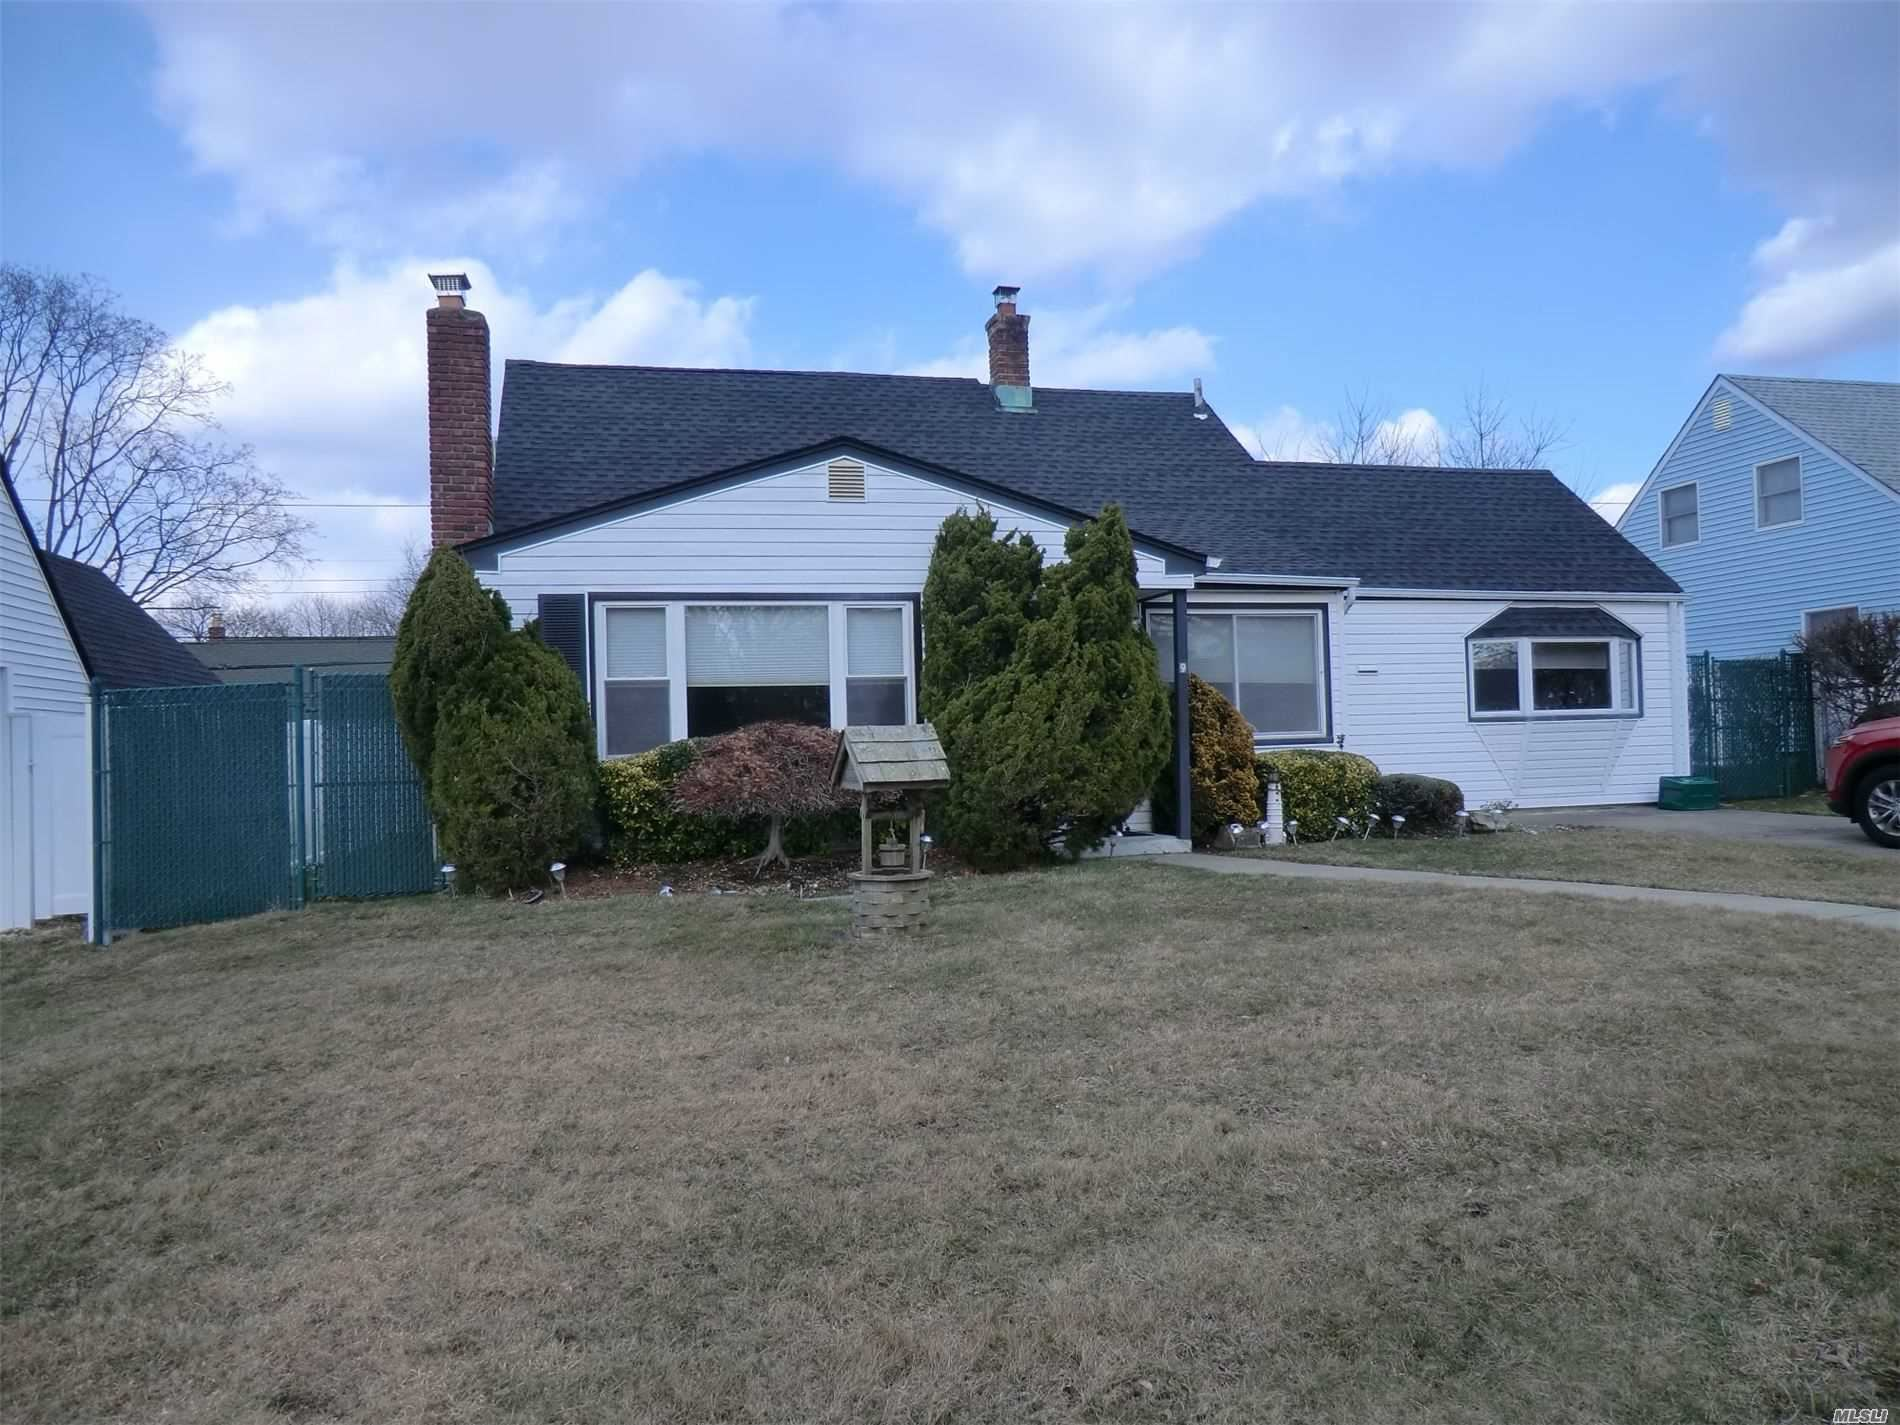 9 Pebble Lane, Levittown, NY 11756 - MLS#: 3199163